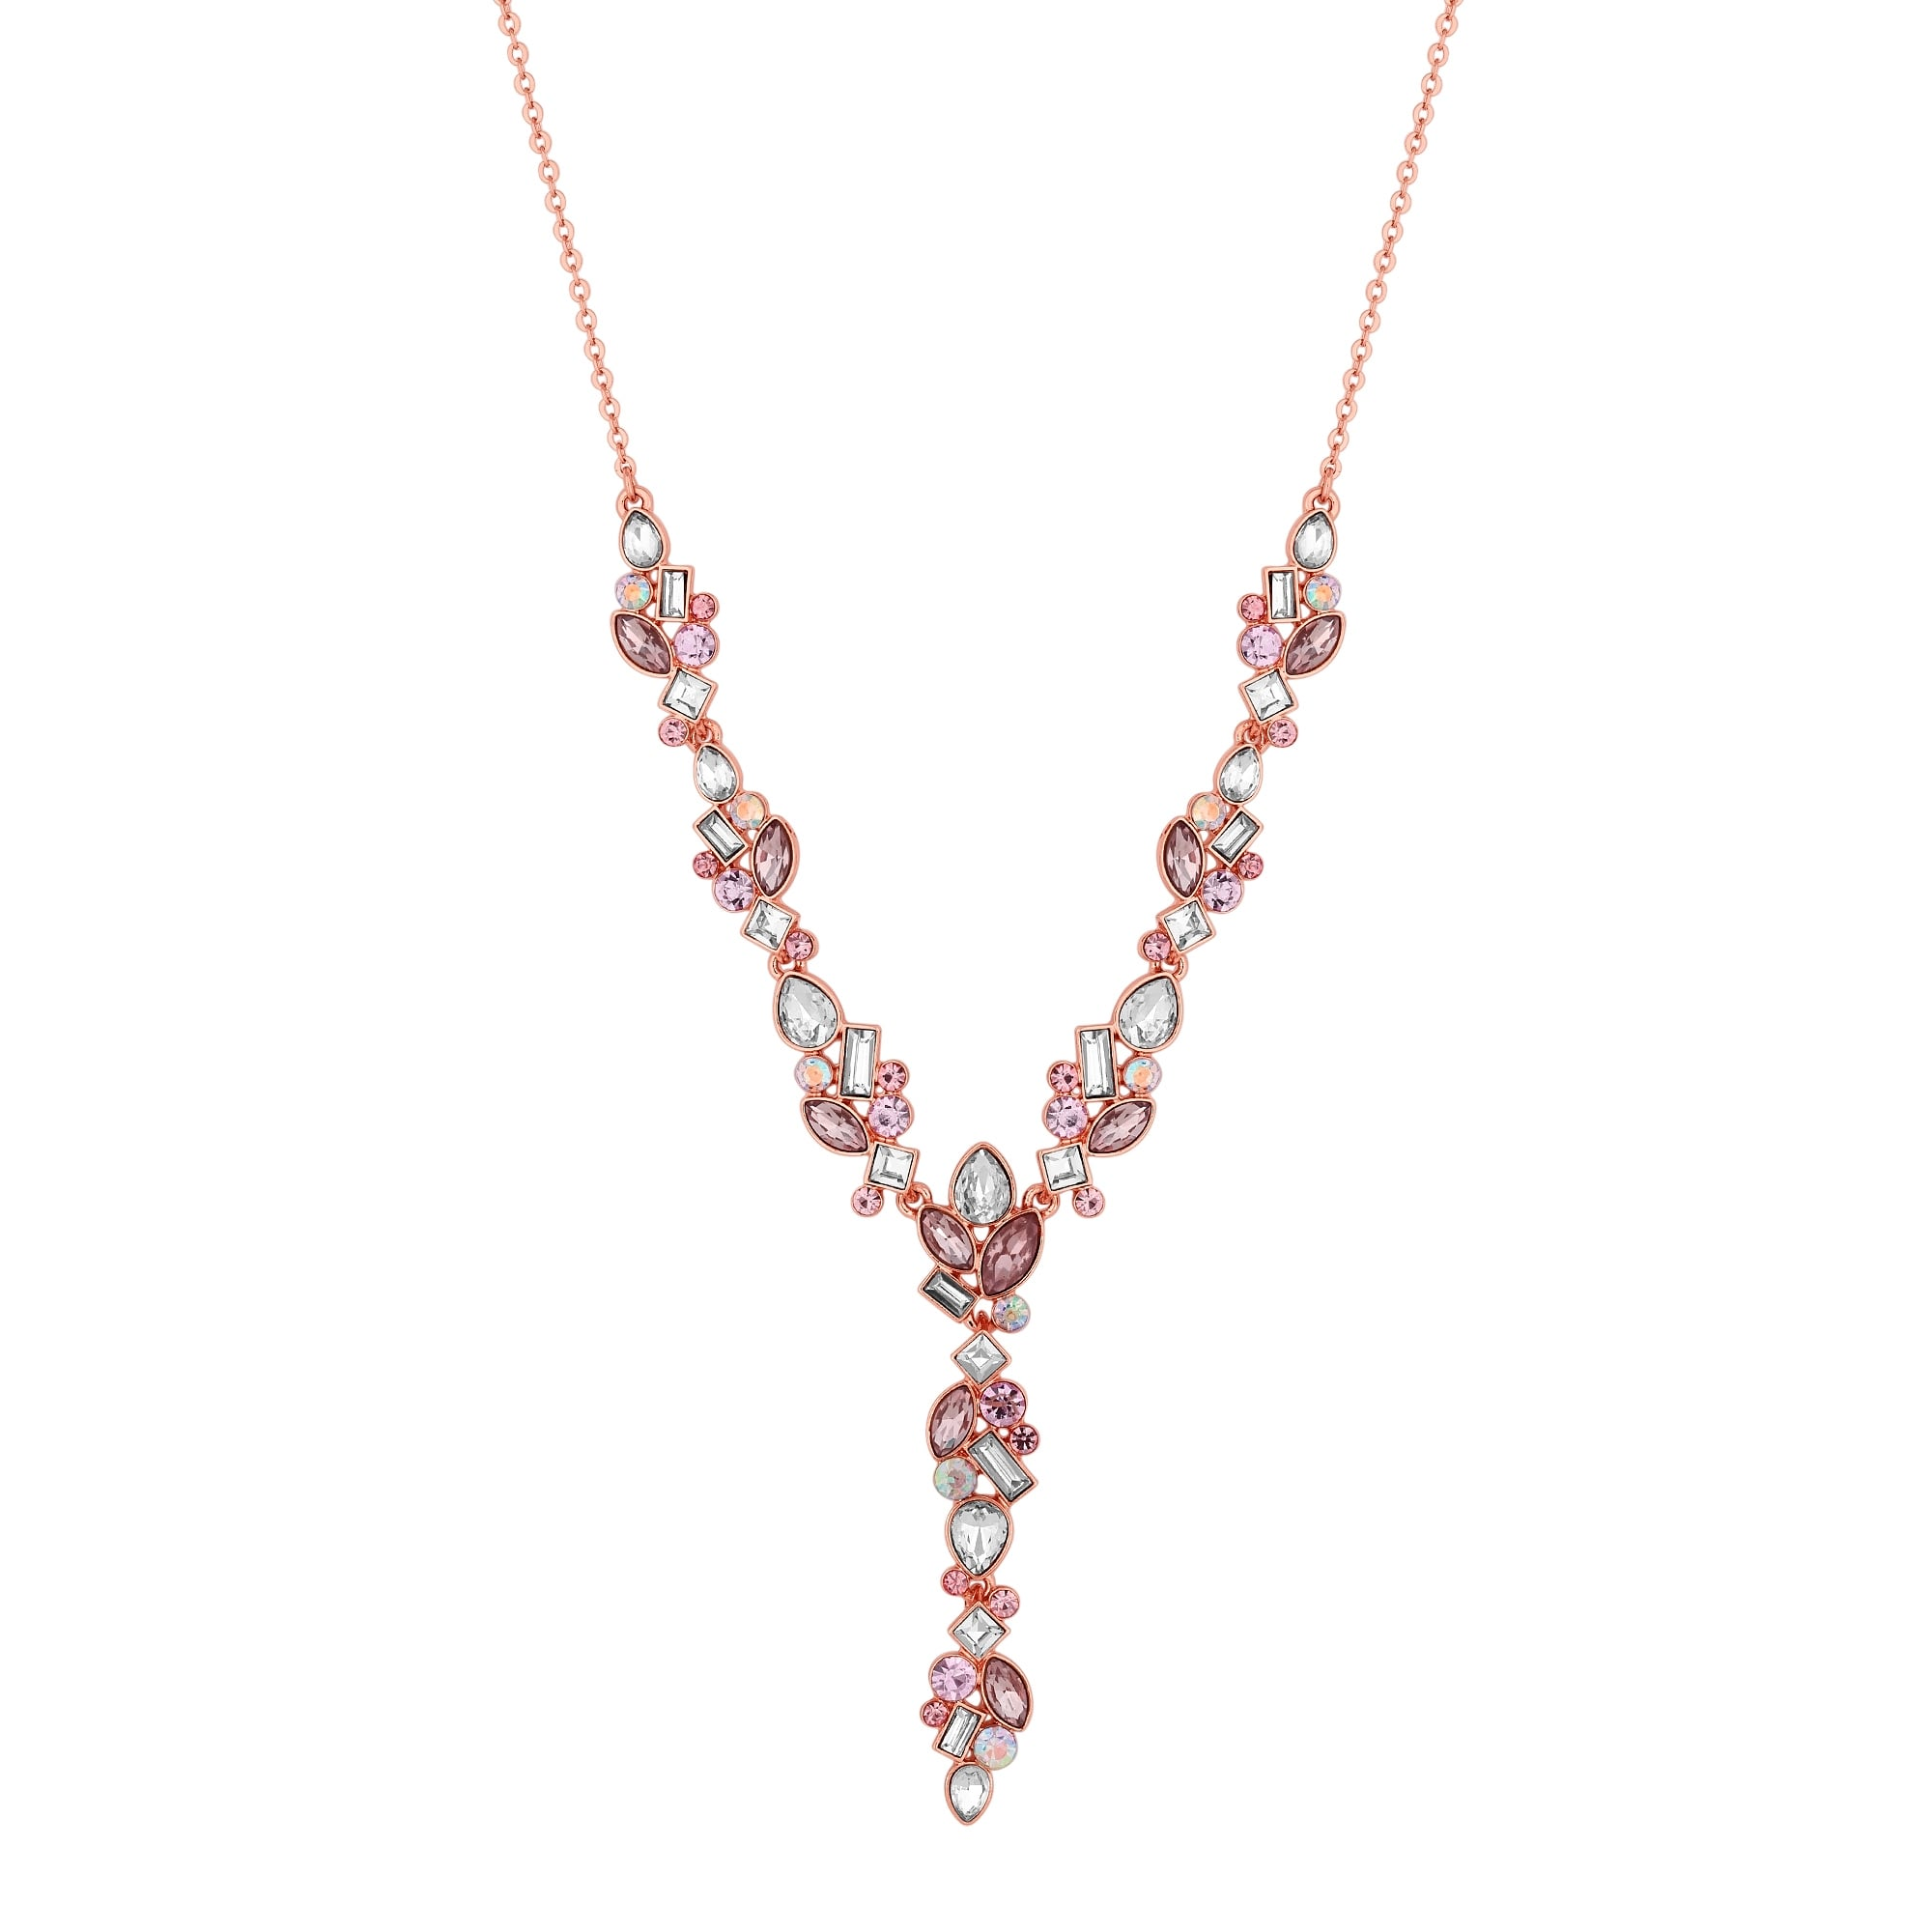 collection necklace the pendant pamper heart crystal crystall pink product and clear